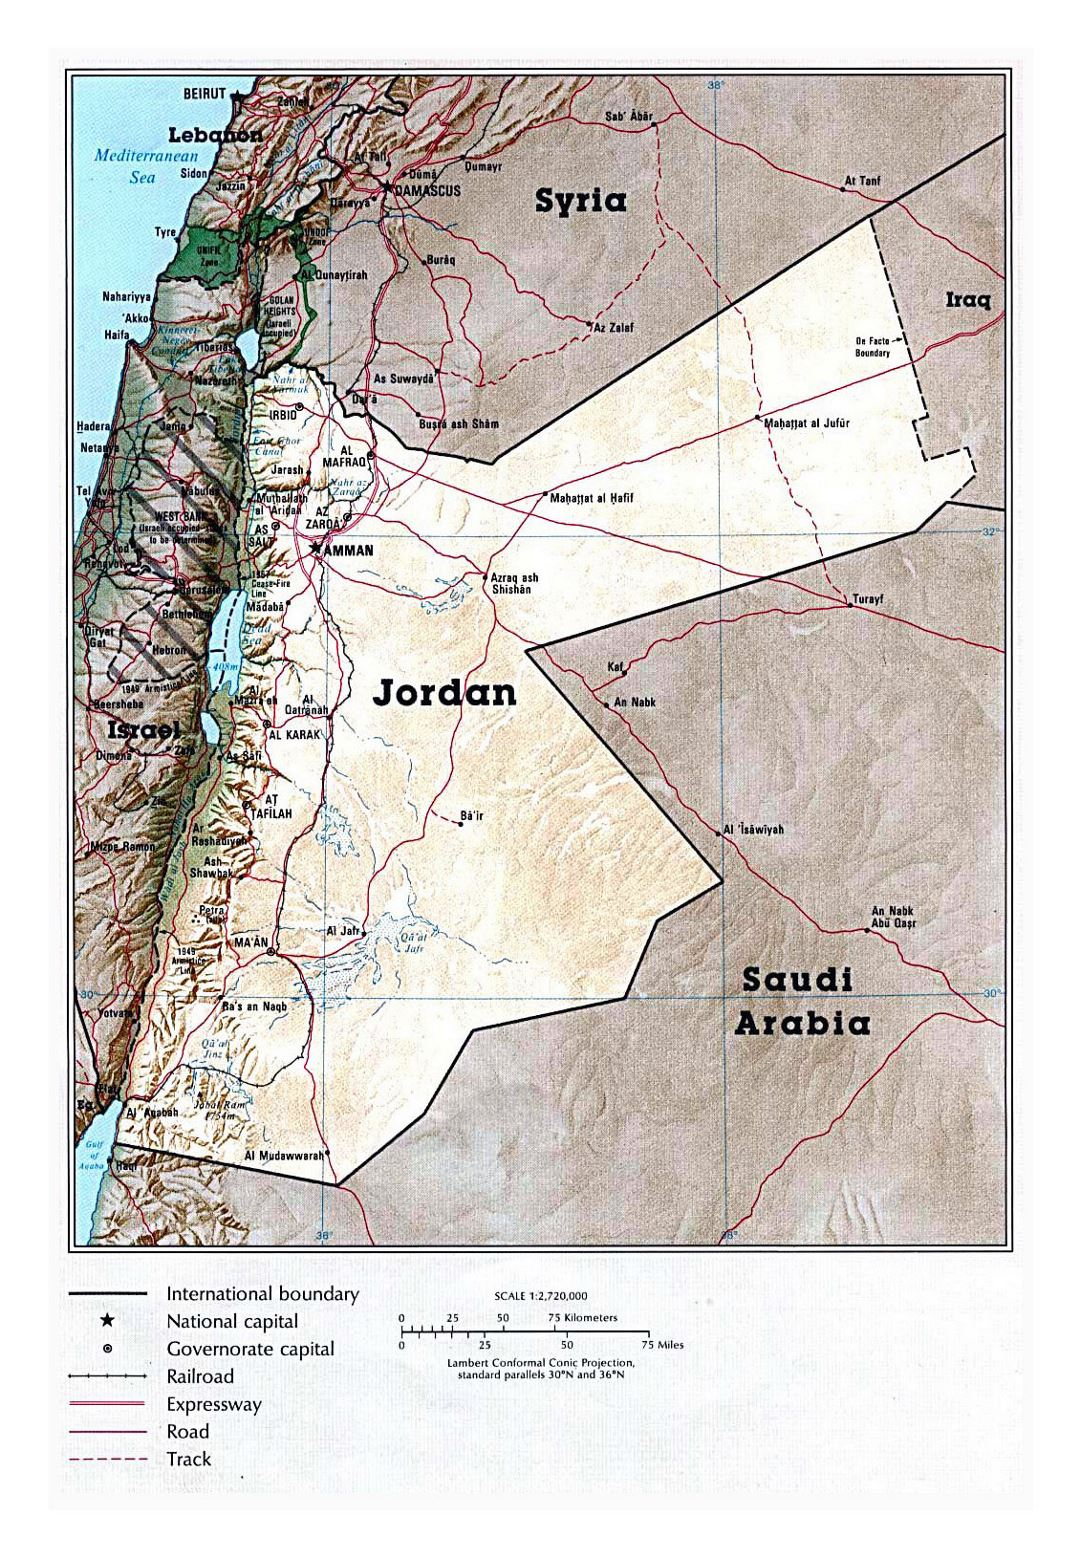 Detailed political map of Jordan with relief, roads, railroads and major cities